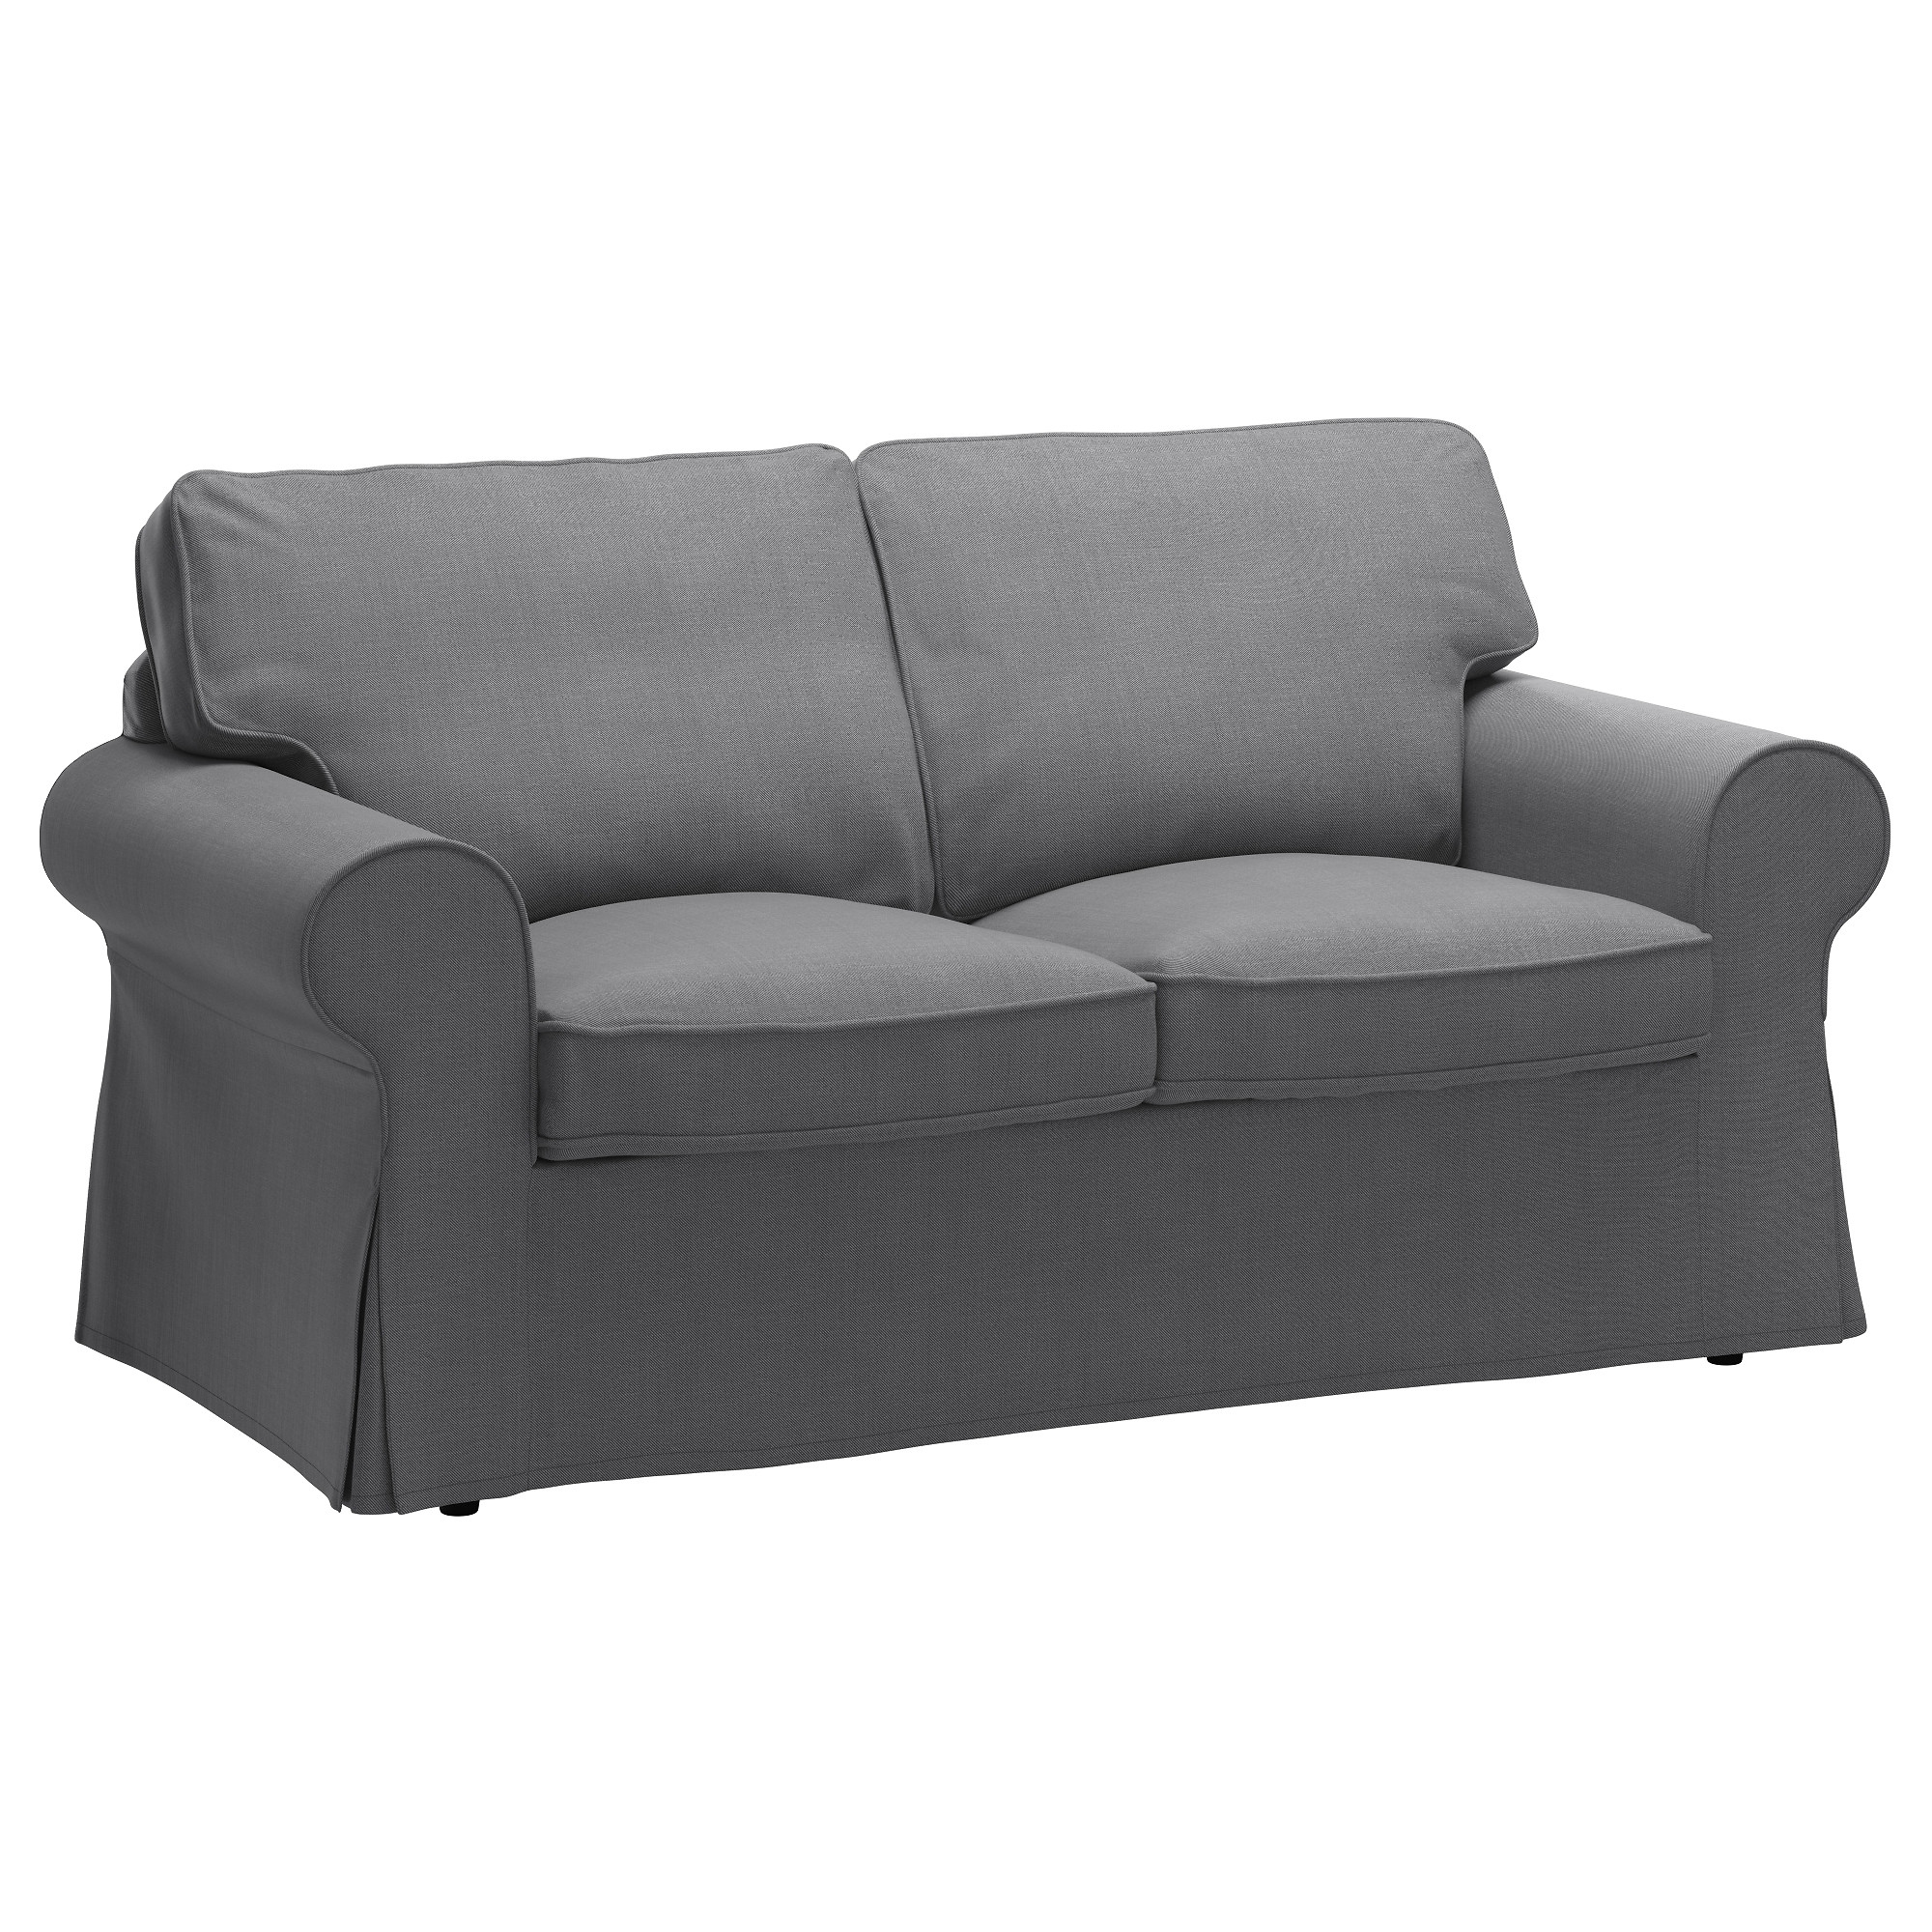 Home Reserve Sectional Review Sofas With Removable Washable Covers Intended For Favorite Sofas With Removable Covers (View 7 of 20)